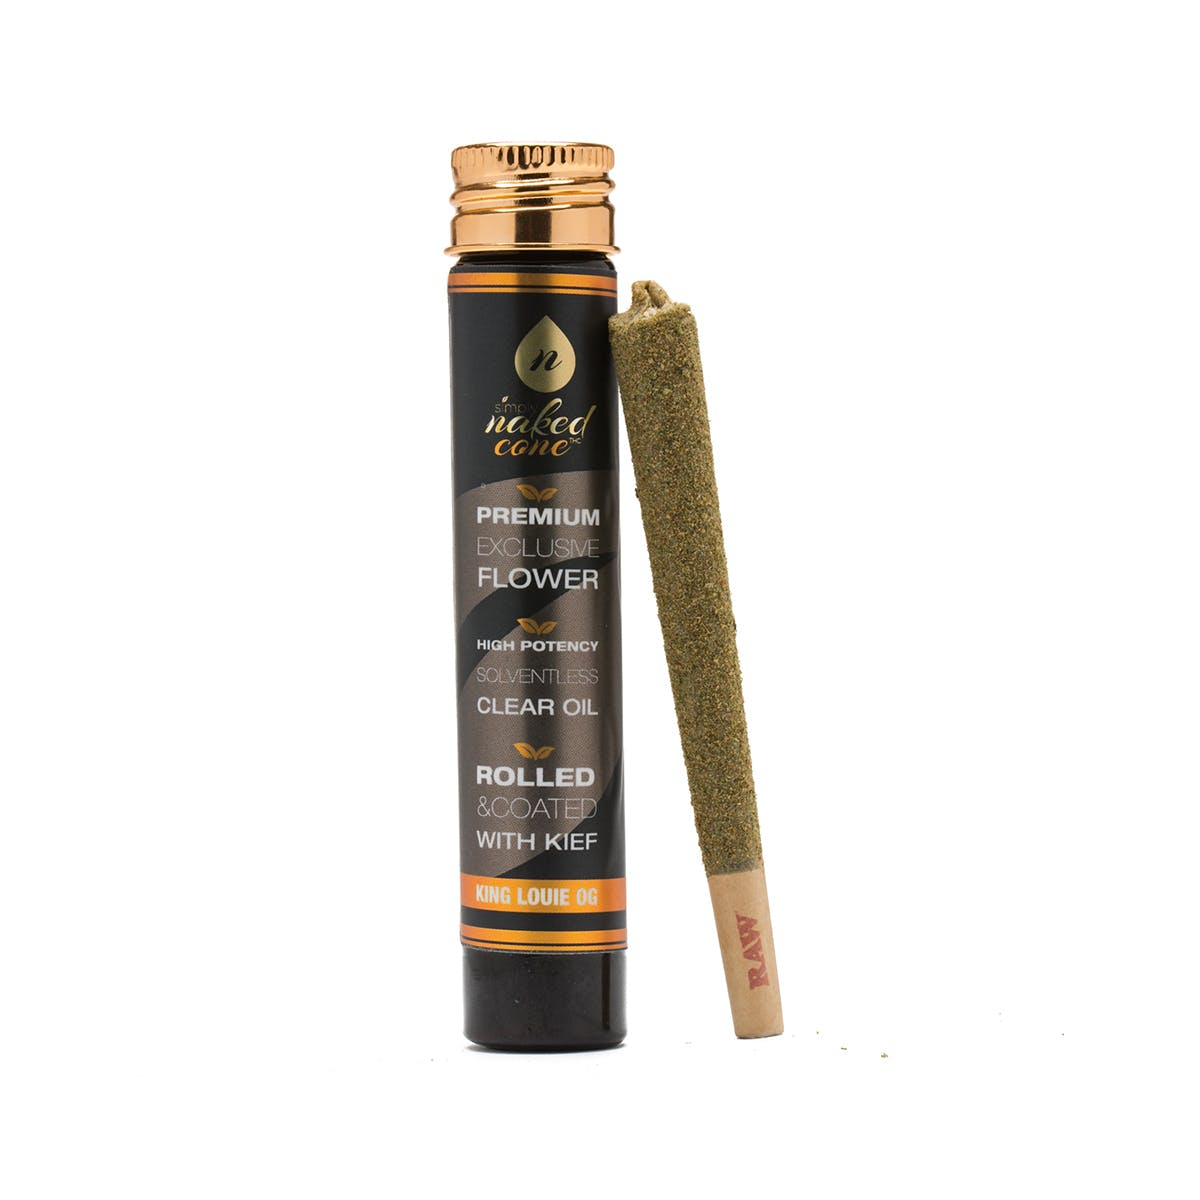 marijuana-dispensaries-true-central-20-cap-collective-in-los-angeles-king-louie-og-simply-naked-cone